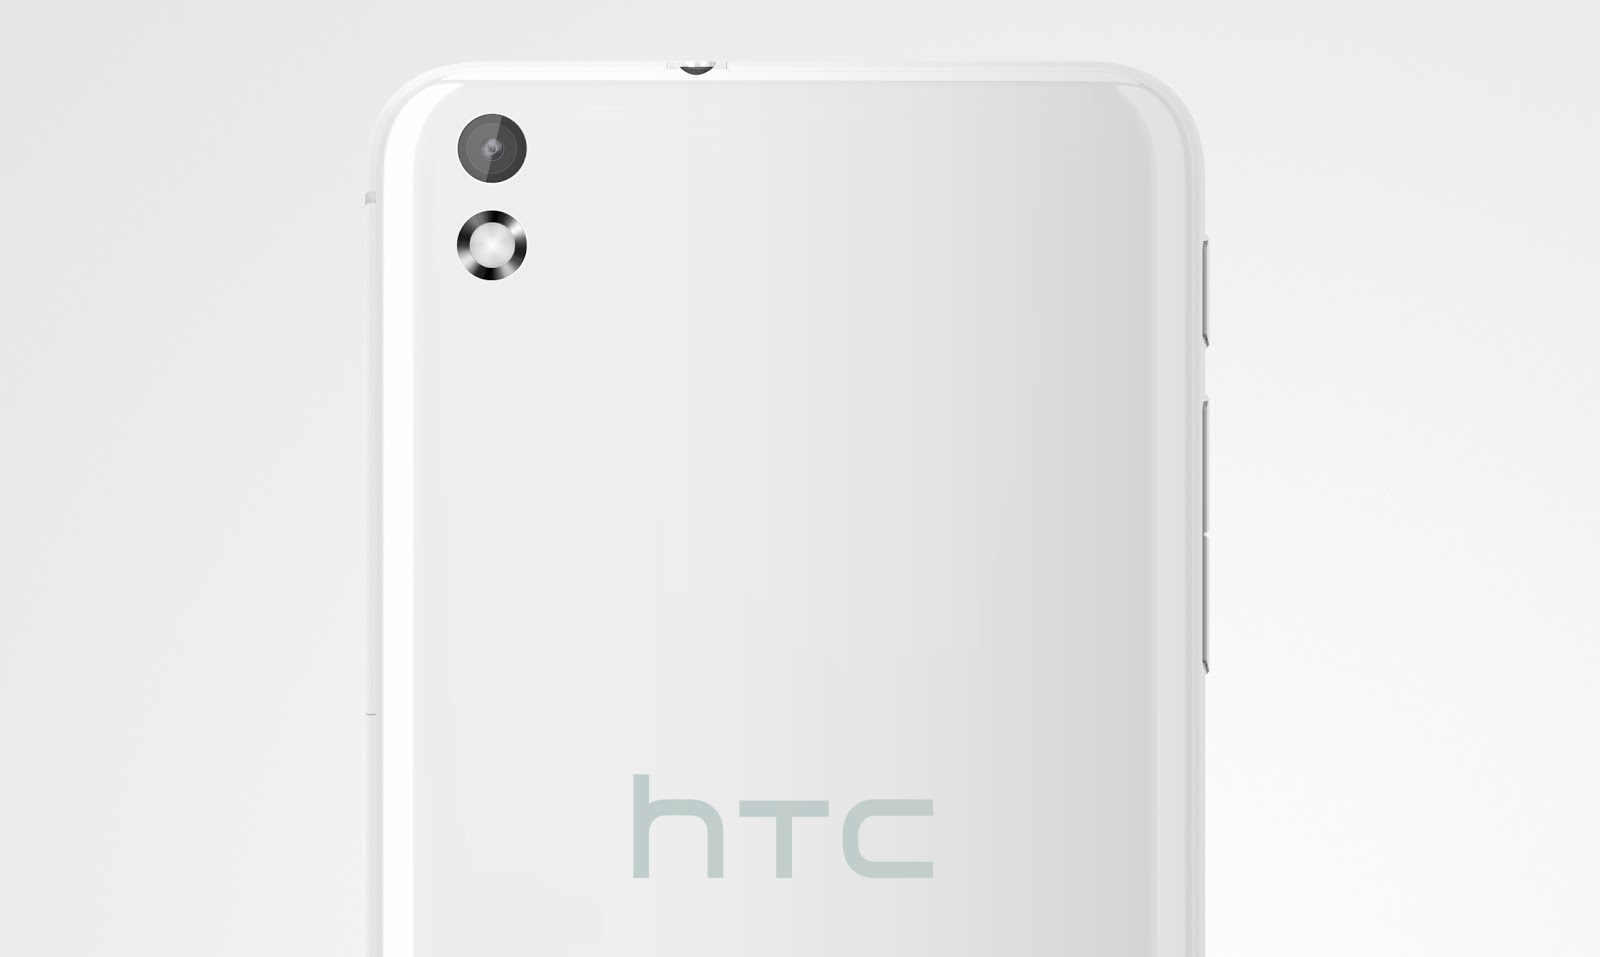 HTC Desire 816 : Complete Specification